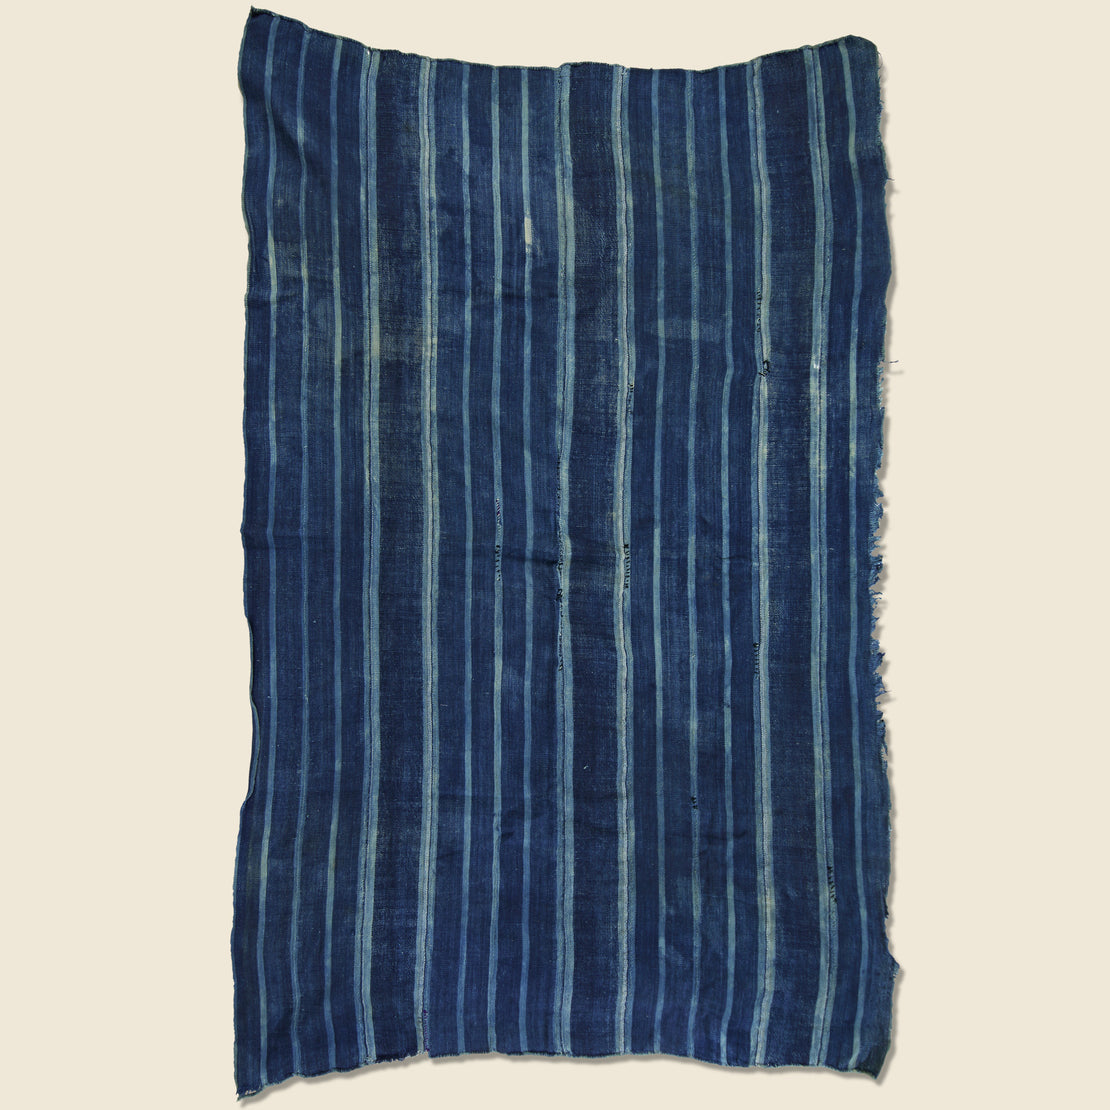 Hand-Woven African Indigo Textile - Vintage - STAG Provisions - One & Done - Blanket